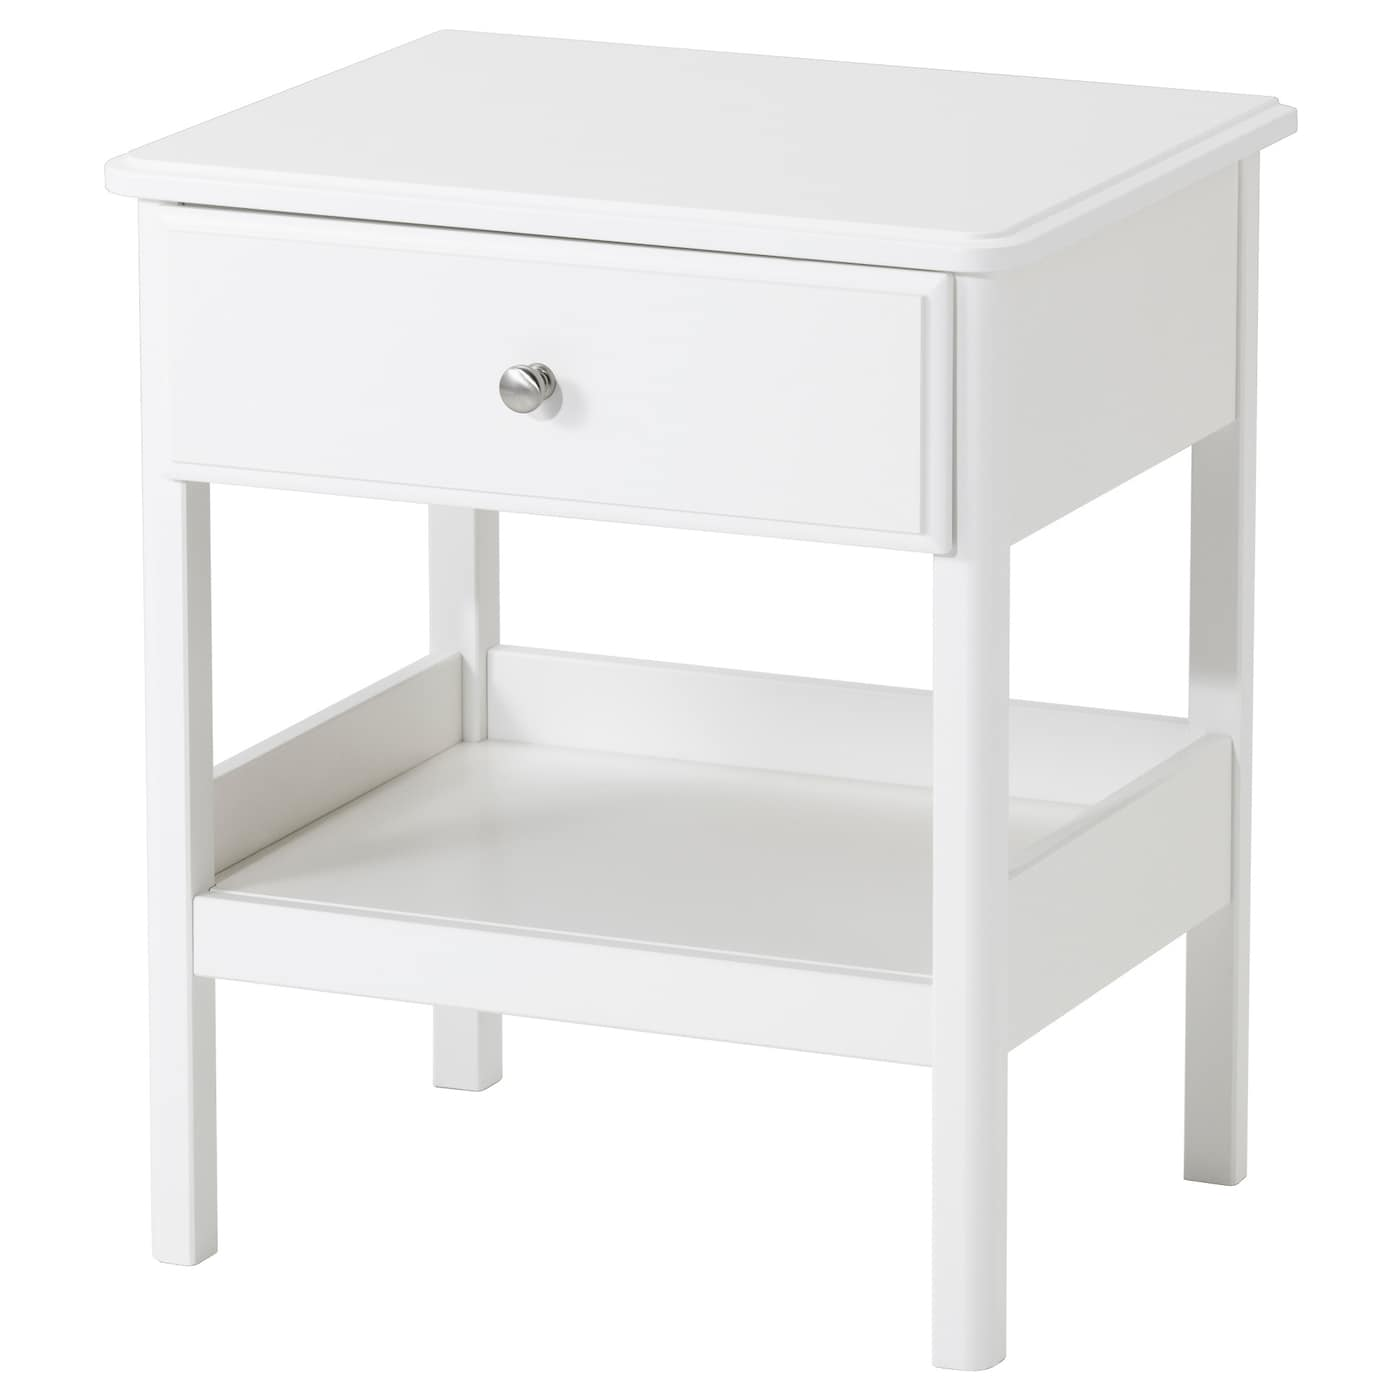 tyssedal bedside table white 51 x 40 cm ikea. Black Bedroom Furniture Sets. Home Design Ideas